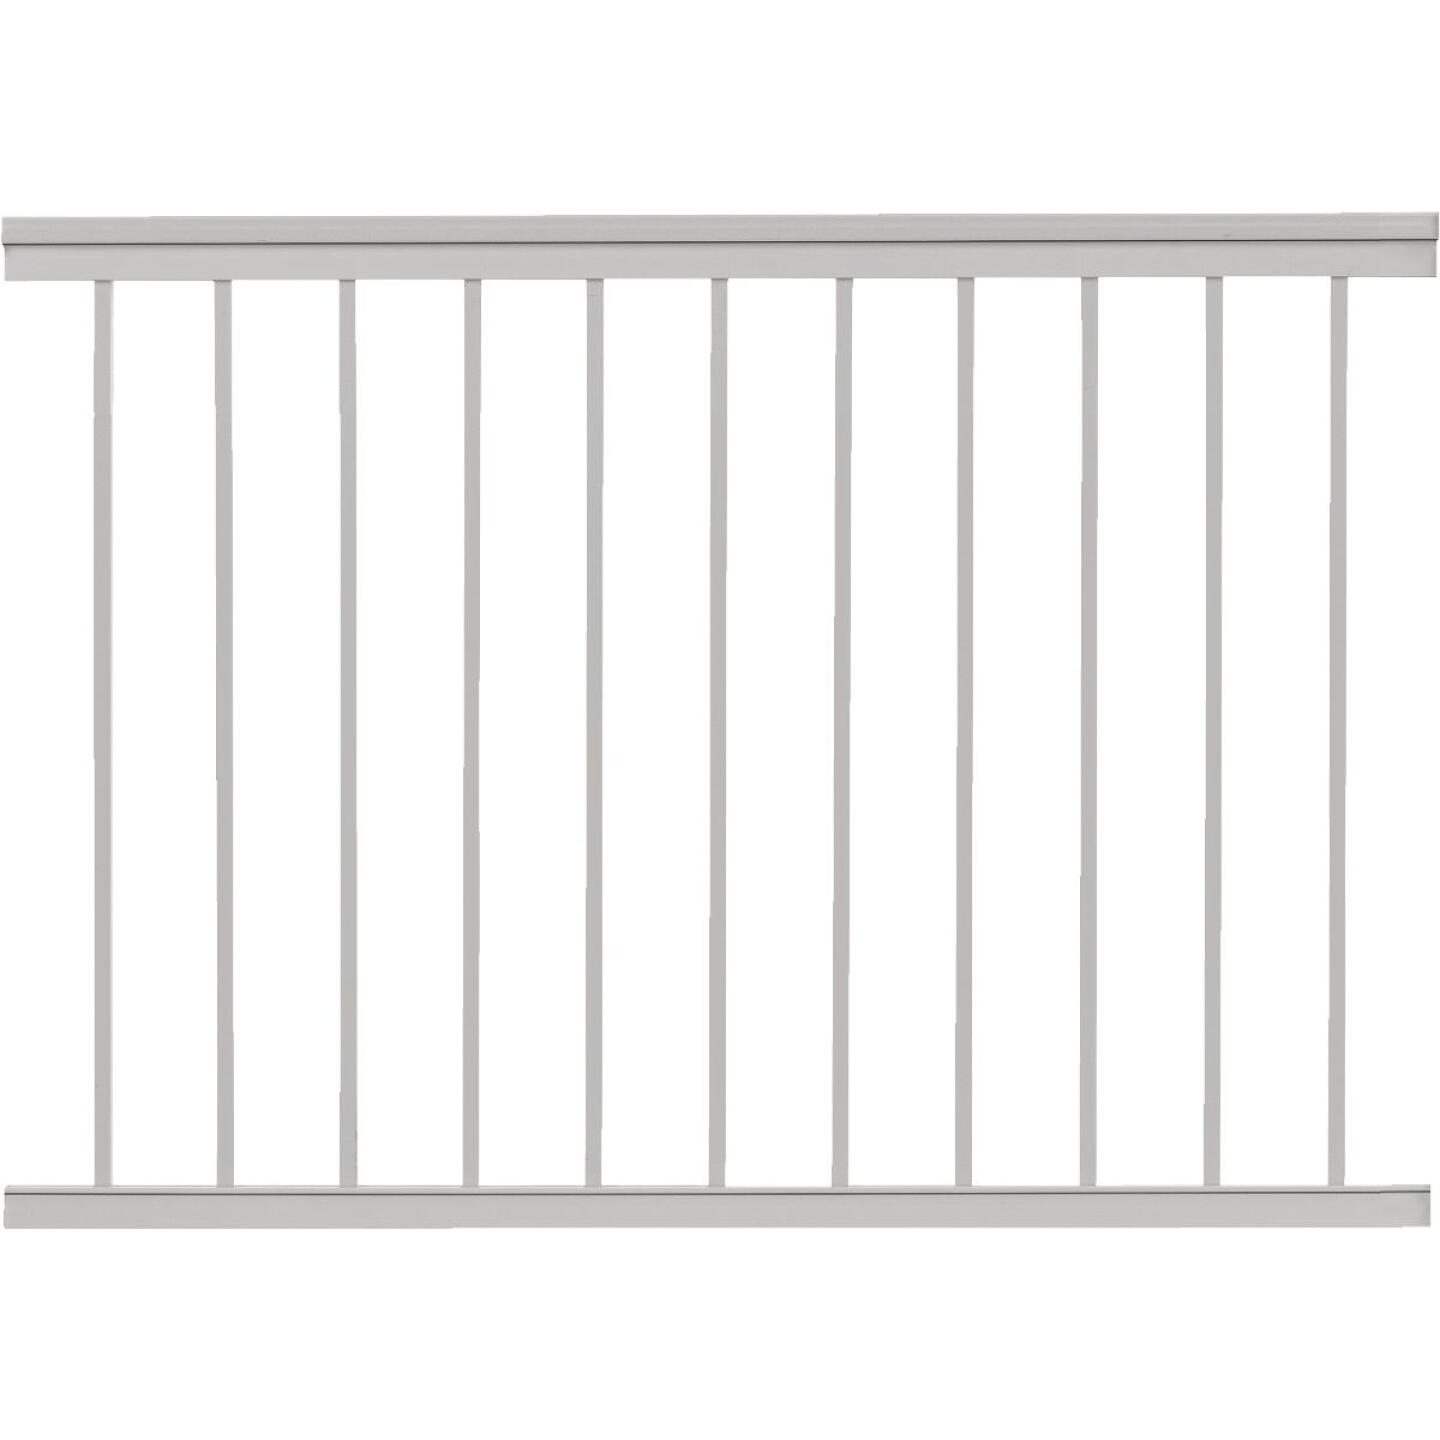 Gilpin Summit 36 In. H. x 4 Ft. L. White Aluminum Railing Image 1